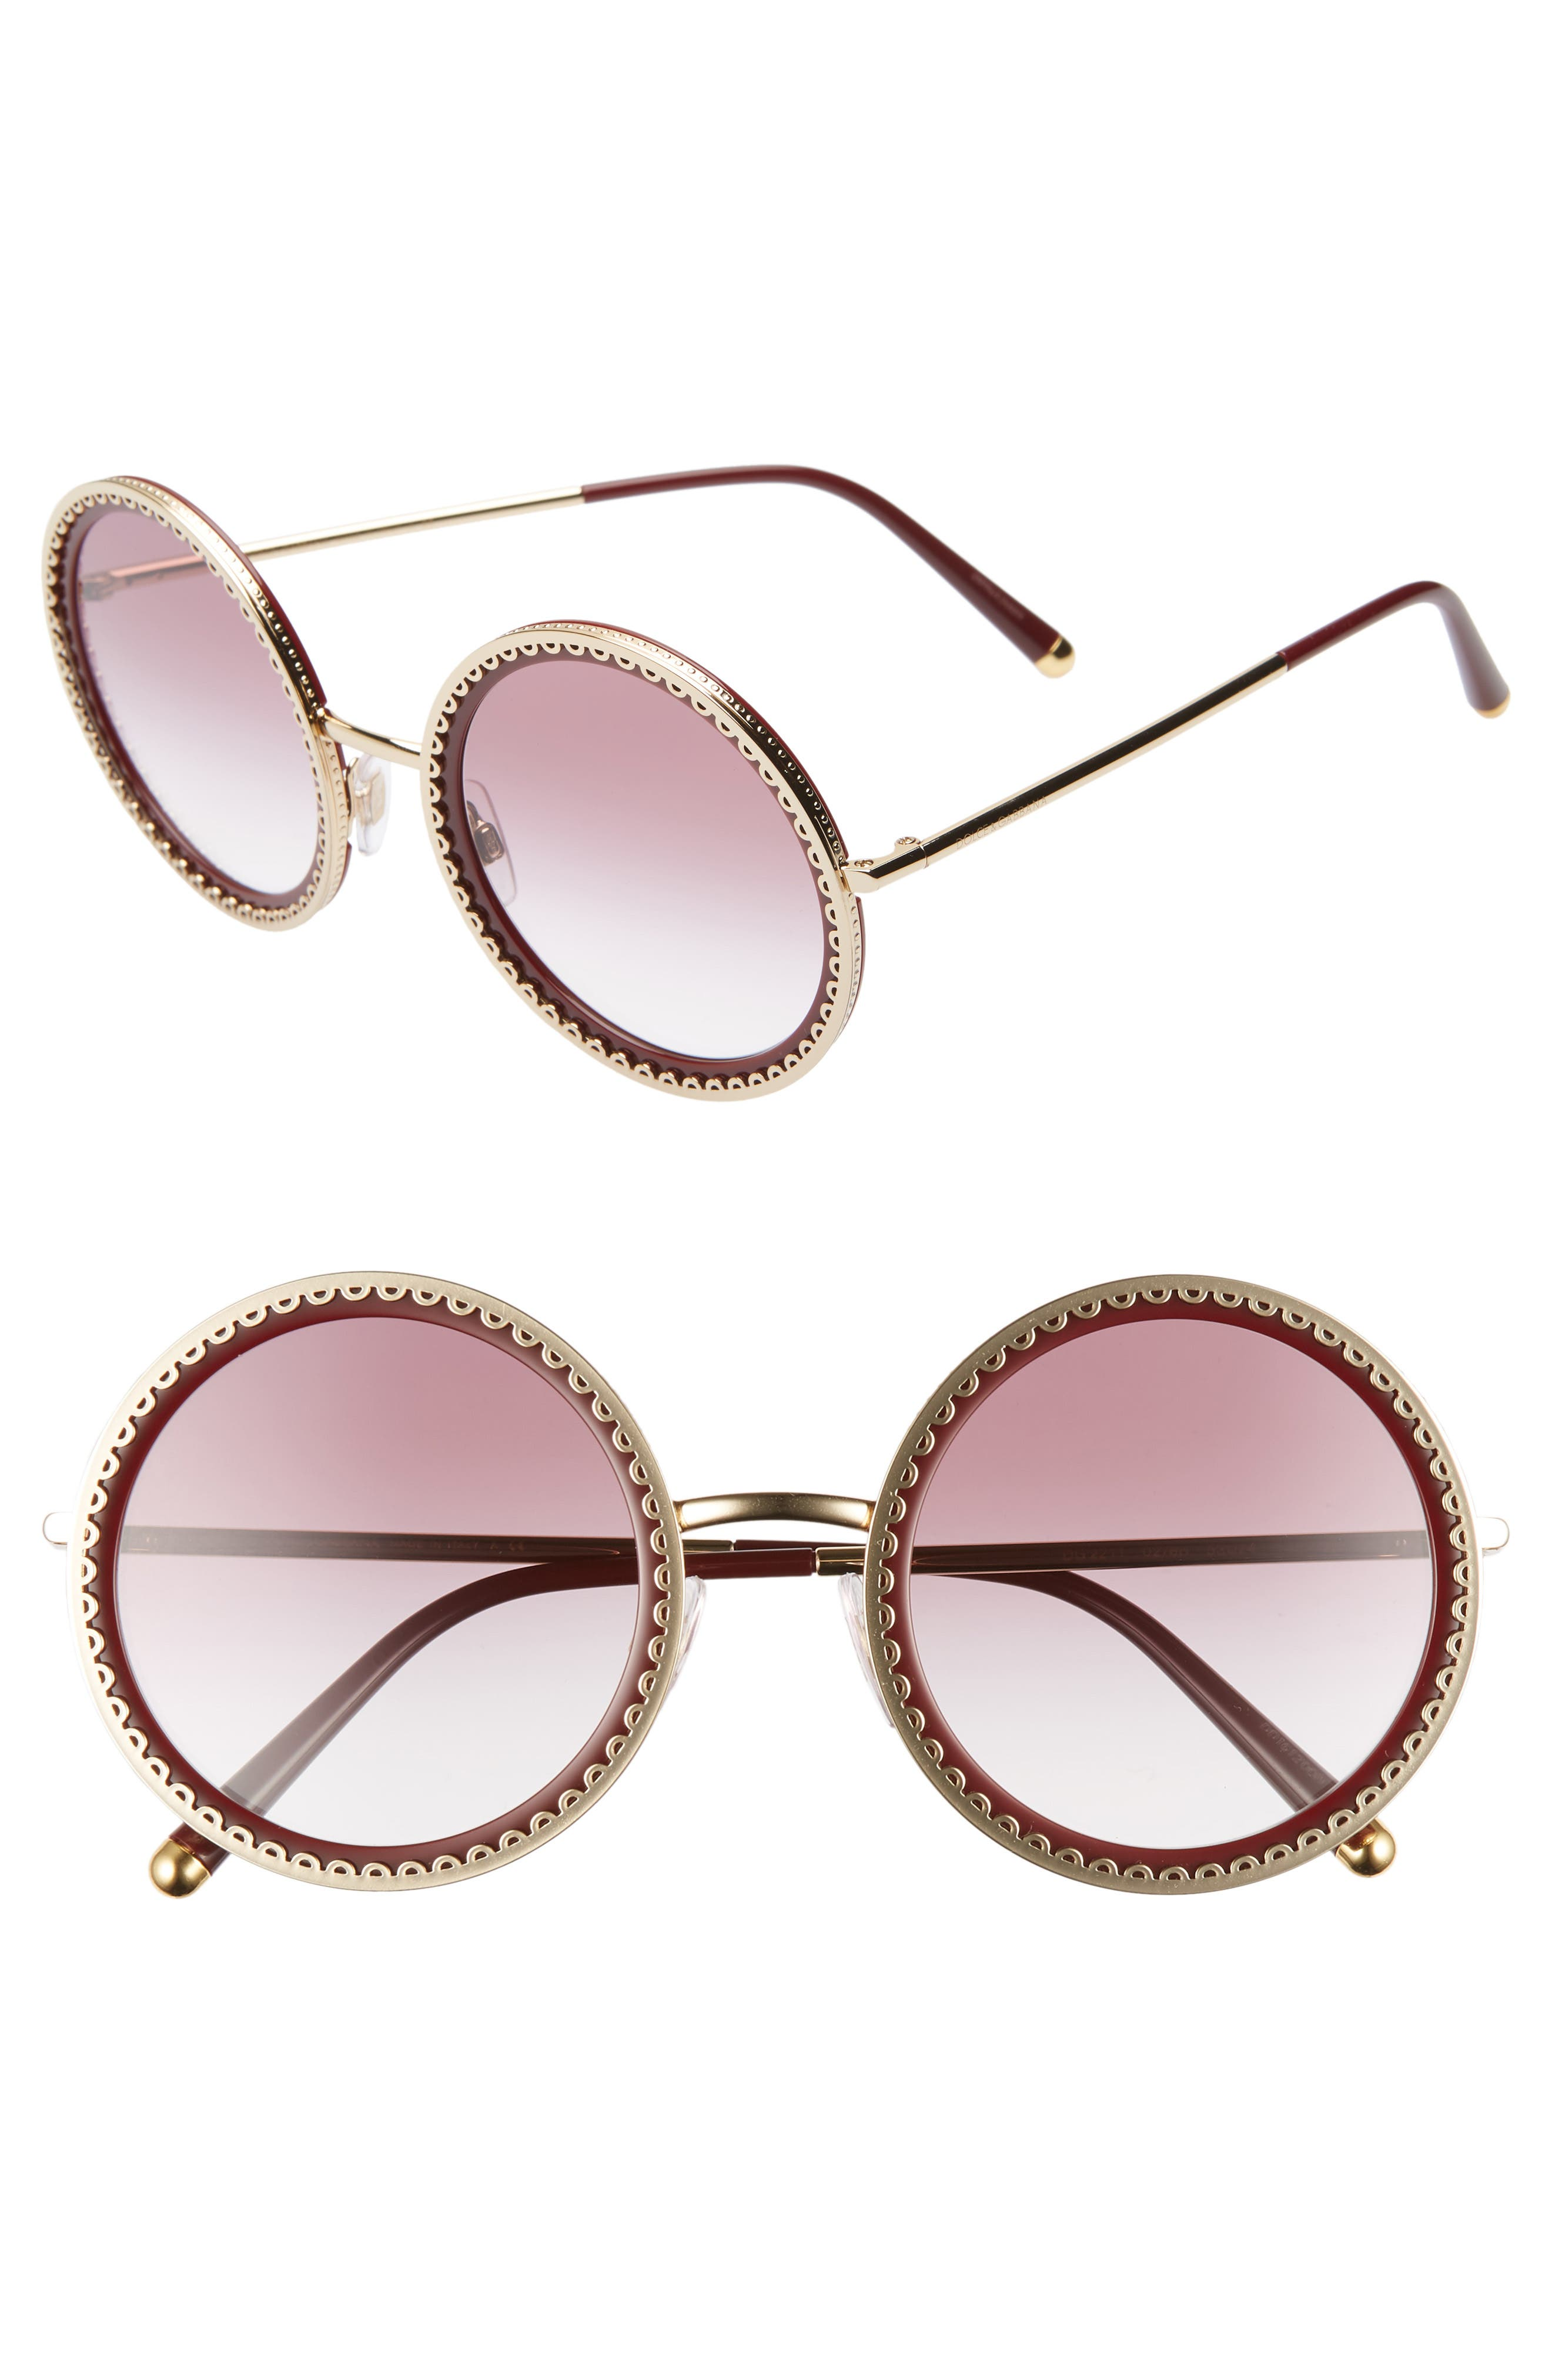 Dolce & gabbana Sacred Heart 5m Gradient Round Sunglasses - Gold Red Gradient